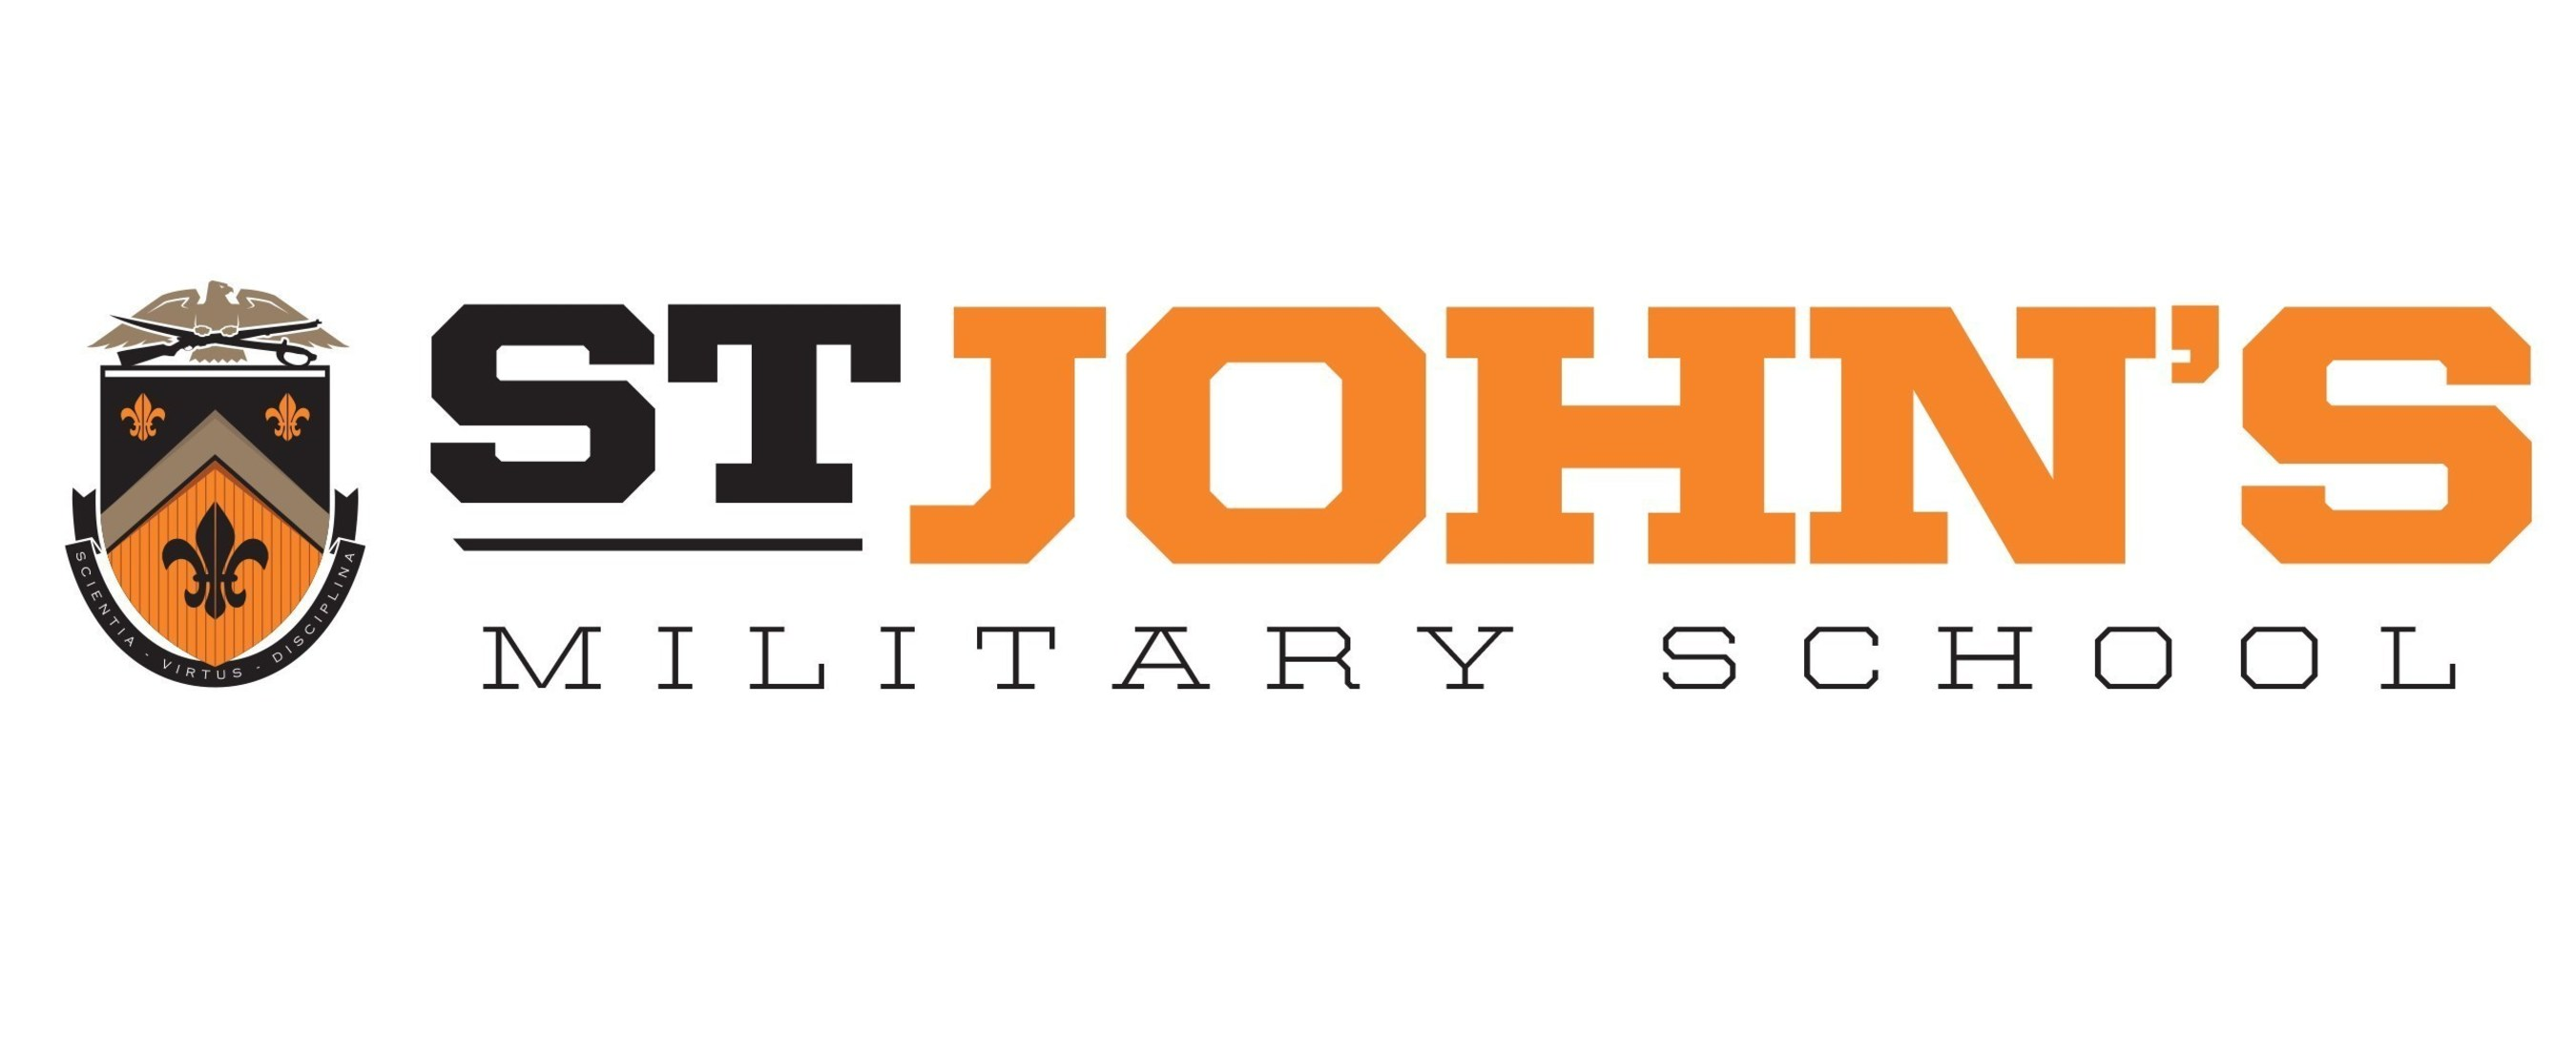 St  John's Military School offers creative solutions for